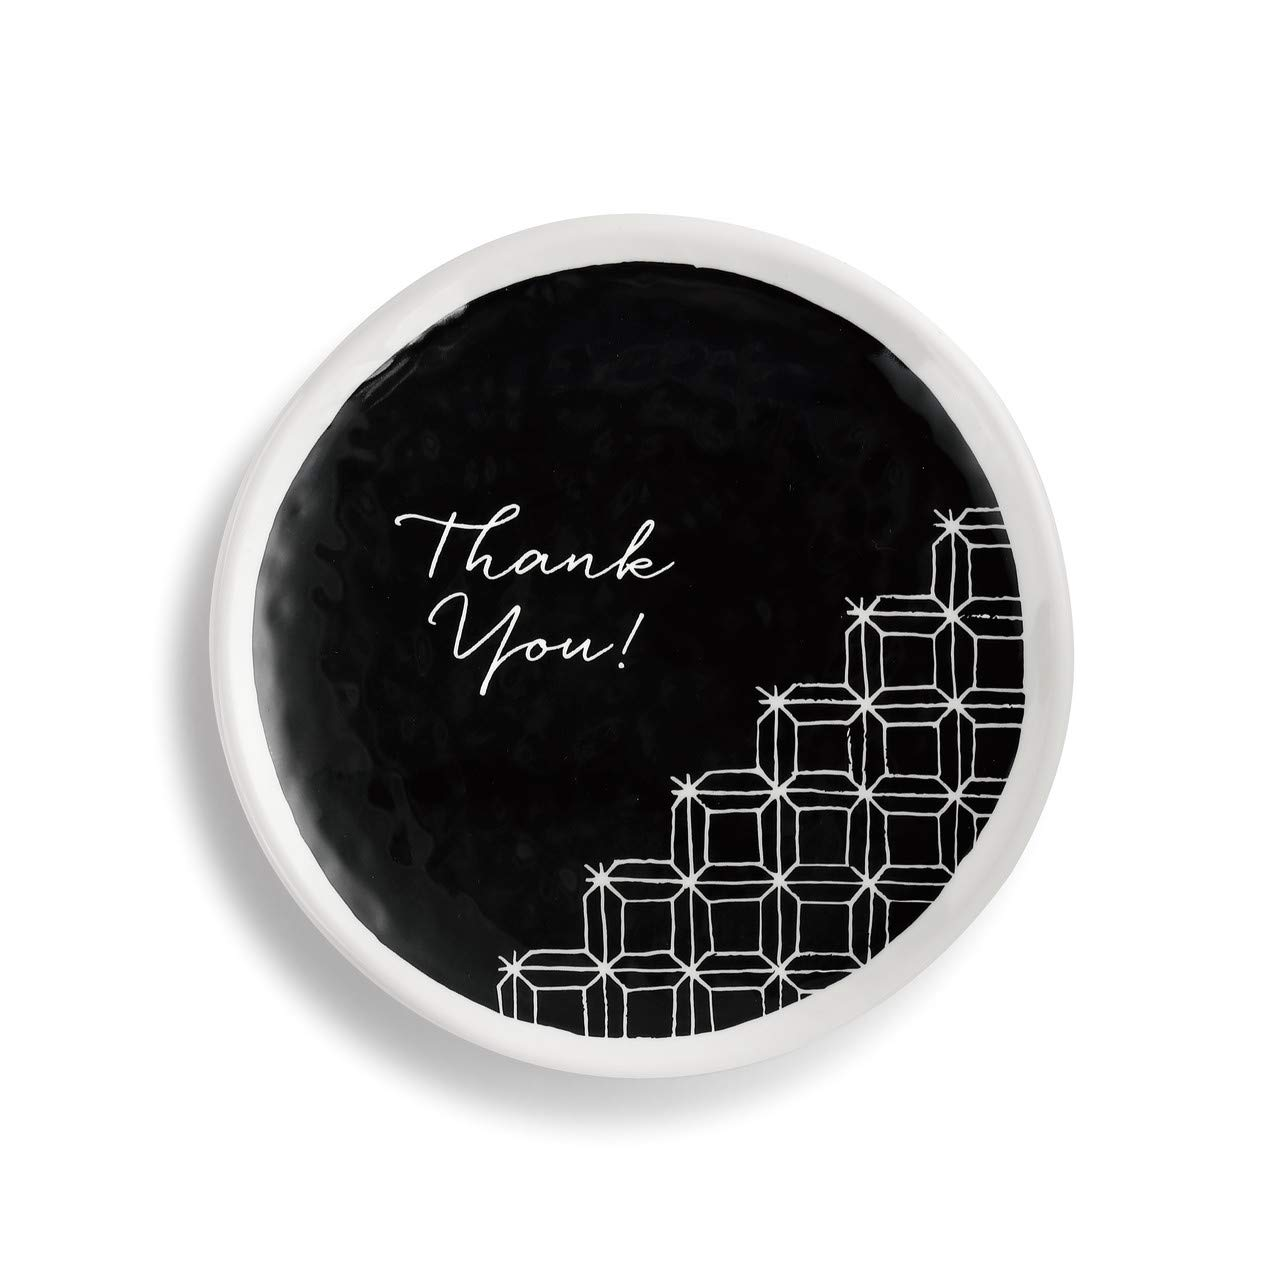 Thank You Pattern Black and White 6 x 6 Melamine Decorative Dessert Plate Demdaco